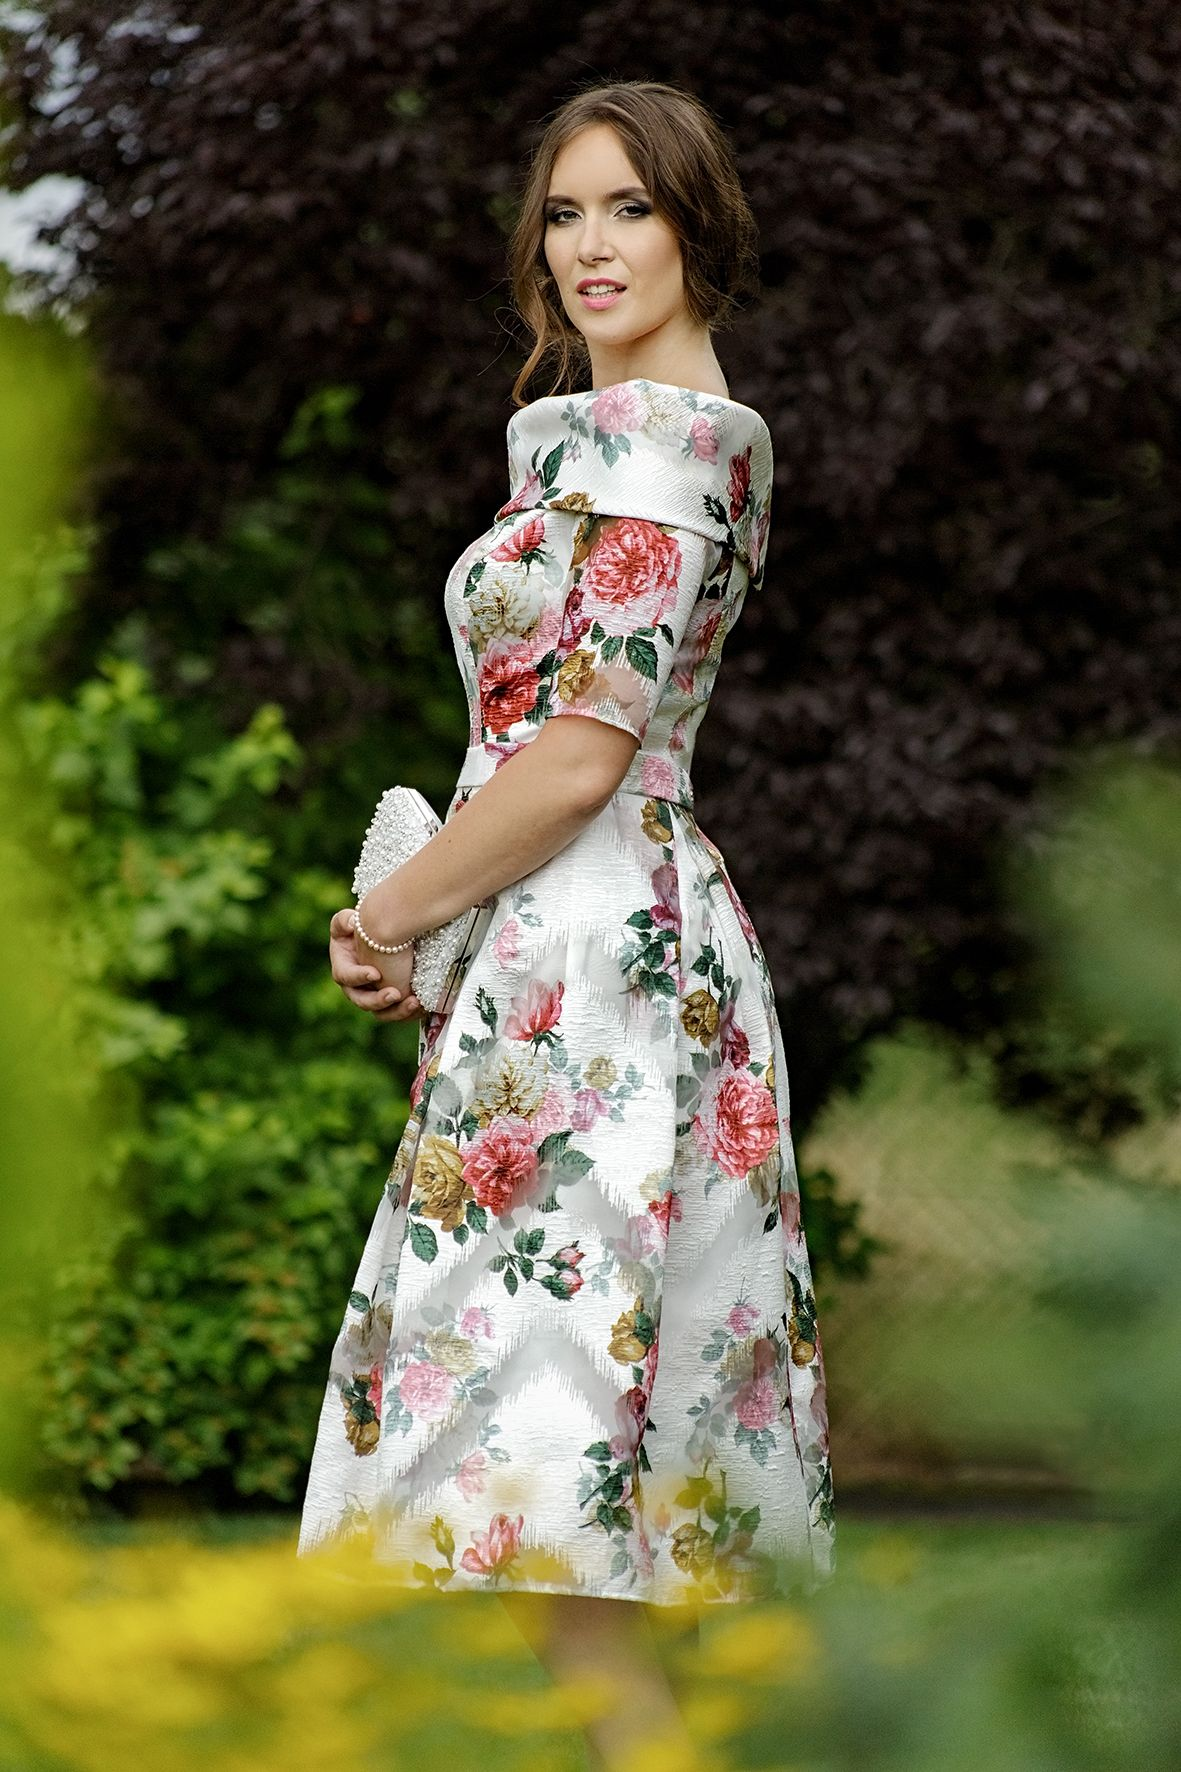 dad2a84a17239 Anoola Spring summer 2019 new mother of the bride occasion wear collection.  Gorgeous floral fit and flare dress with statement neckline.